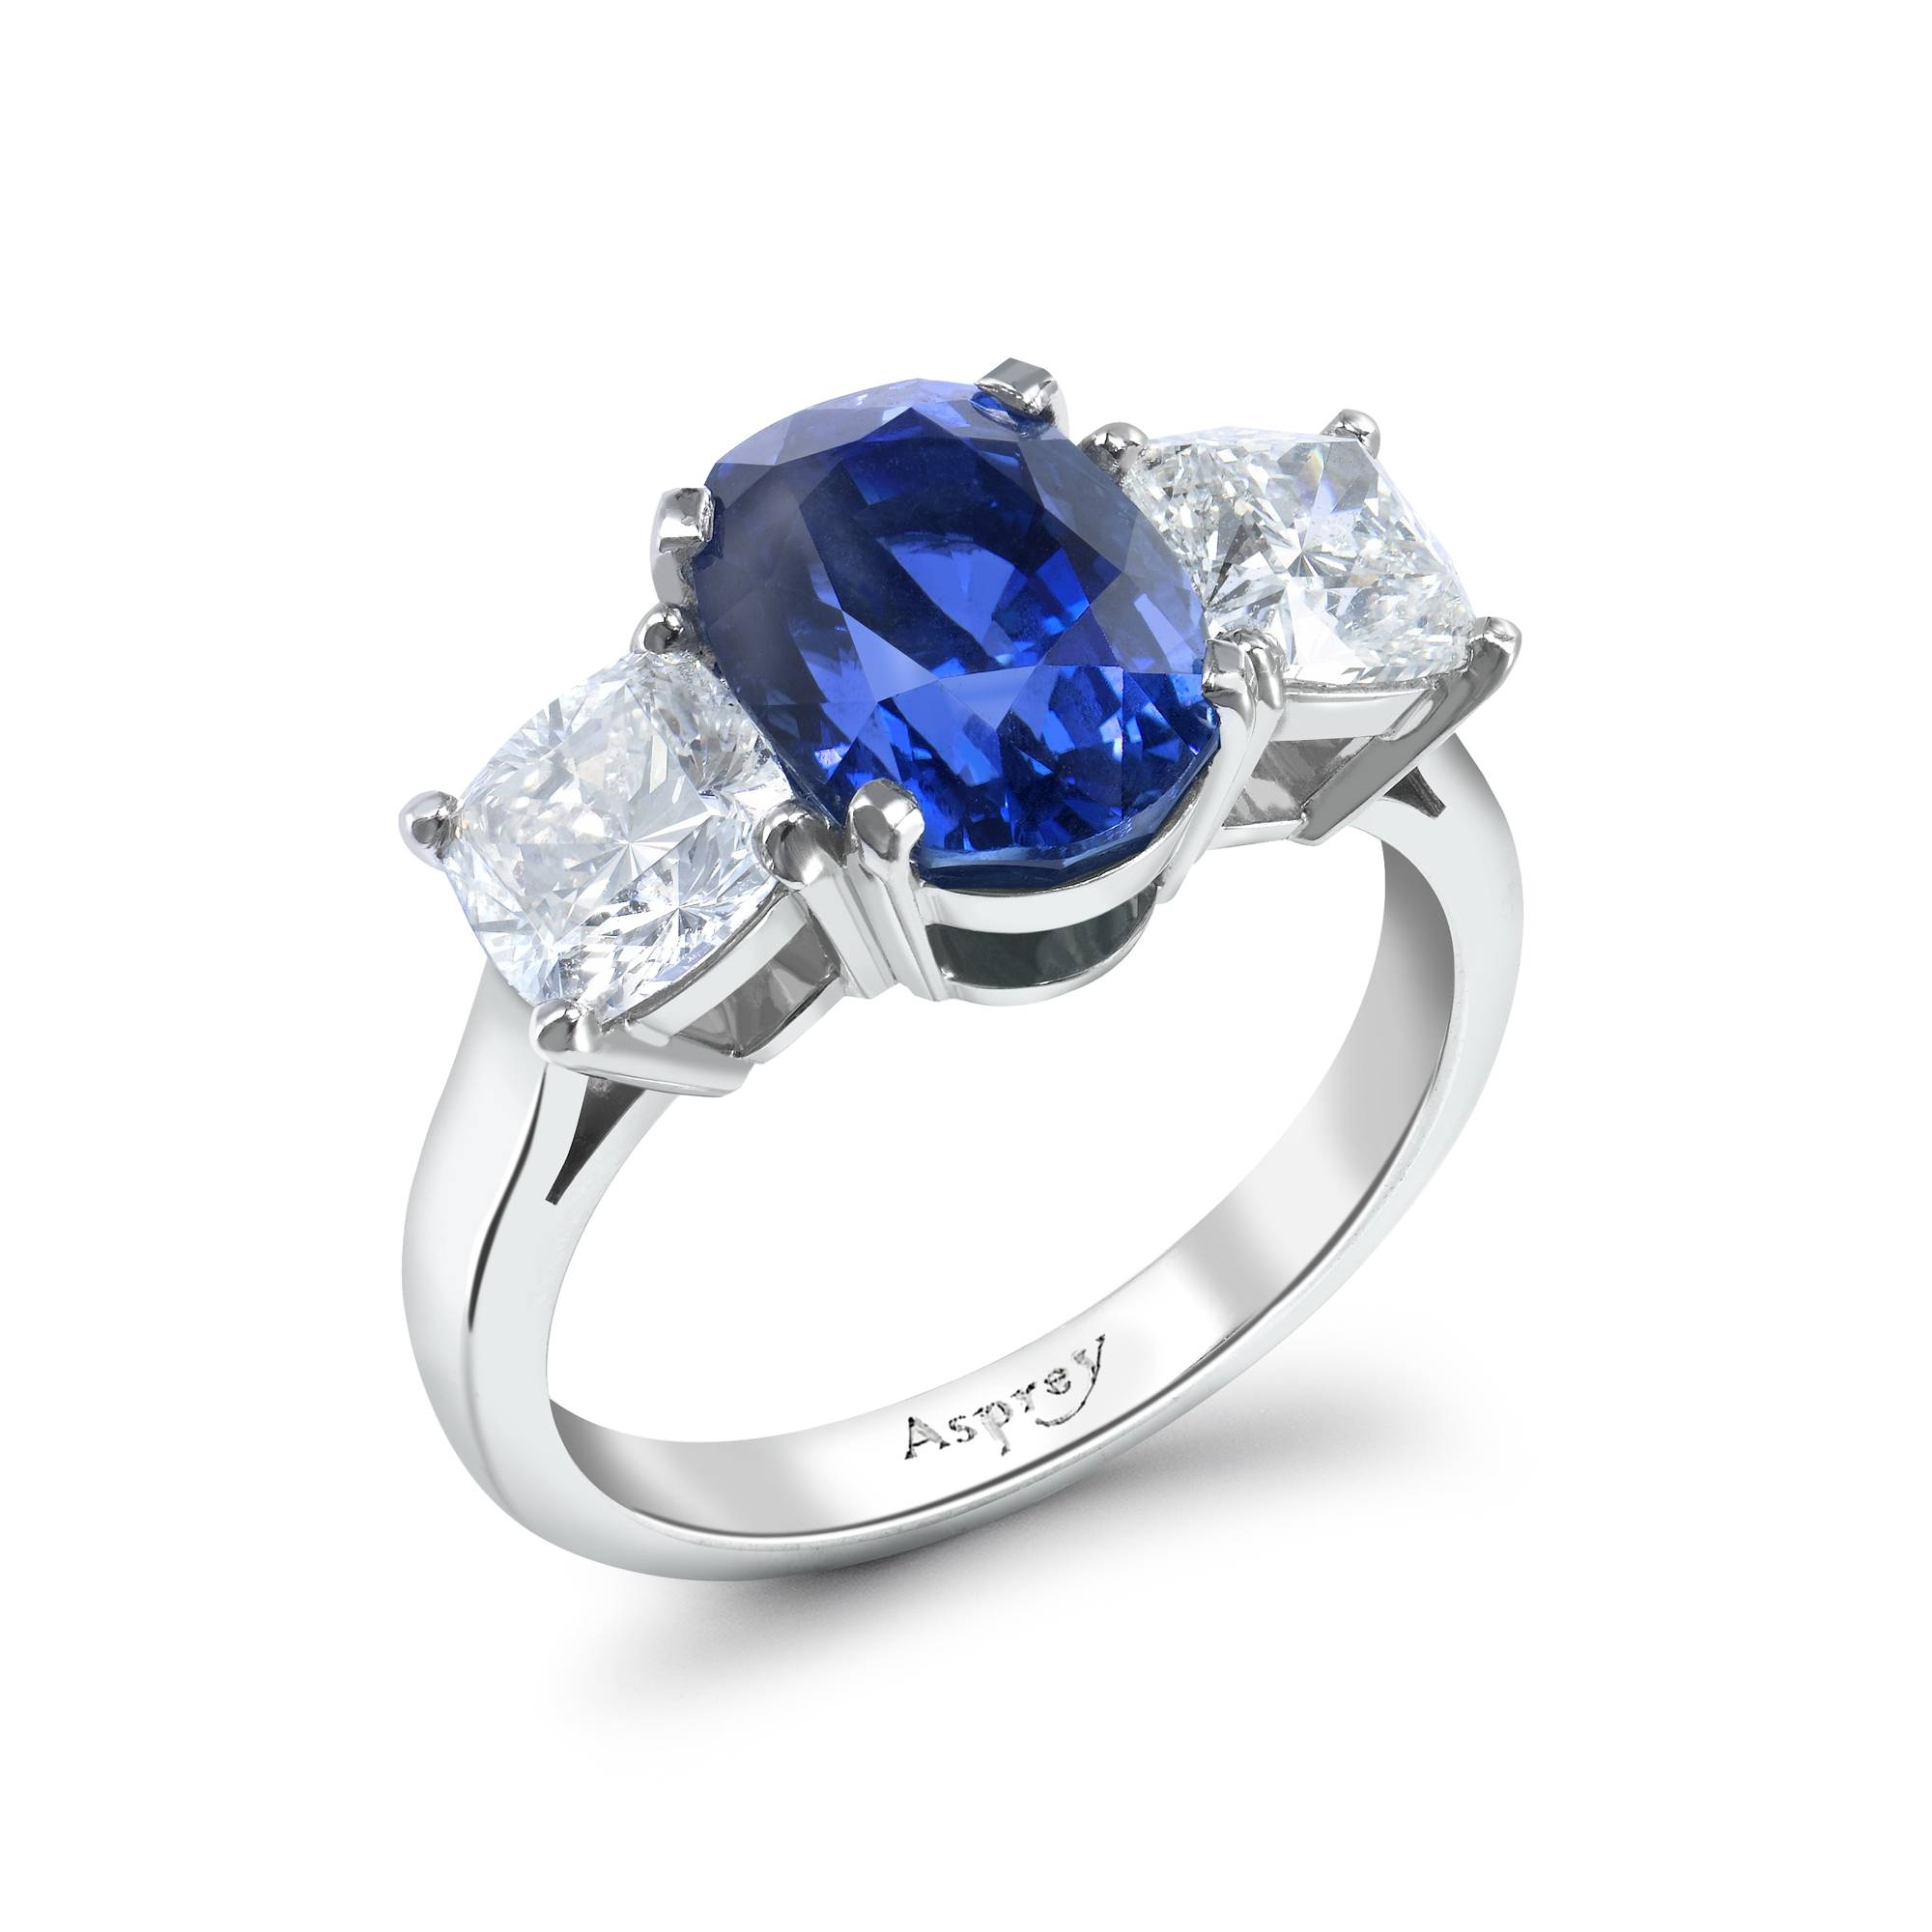 Engagement Rings : B Sbv Loveme Beautiful Engagement Ring Sapphire Regarding Engagement Rings With Sapphire (View 5 of 15)